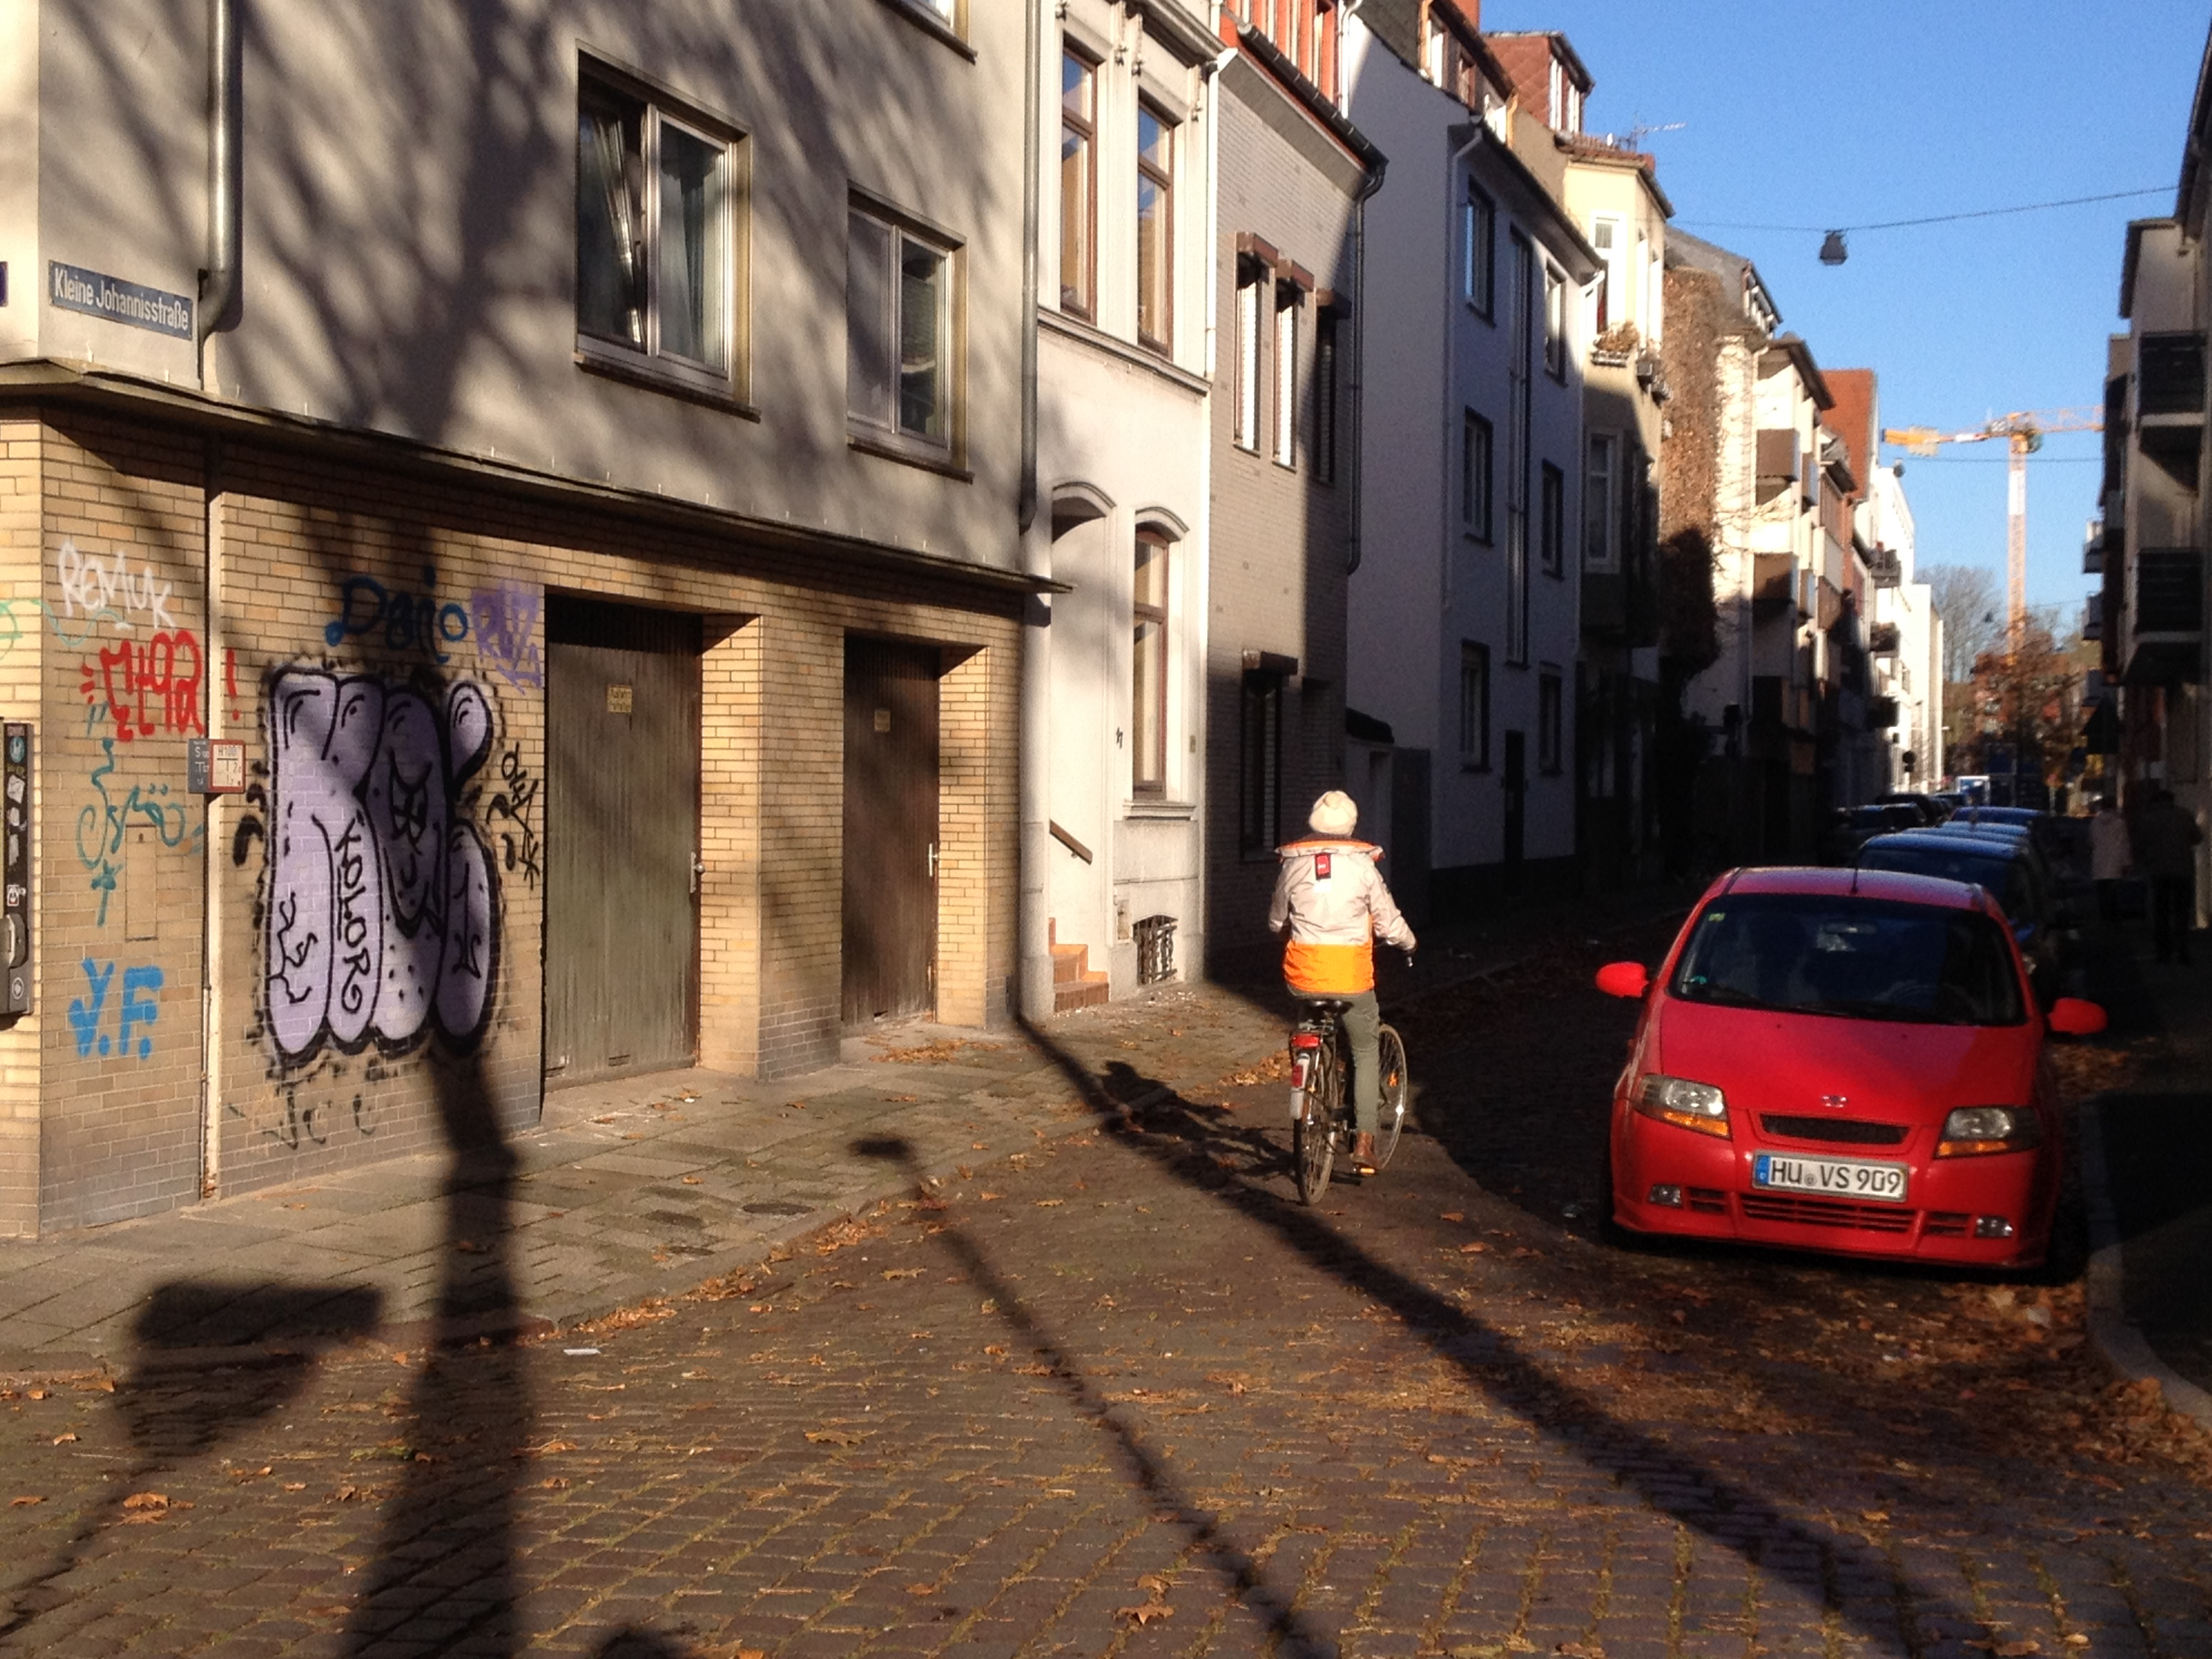 Kleine Johannisstrasse: One of the more uncomfortable streets for cycling